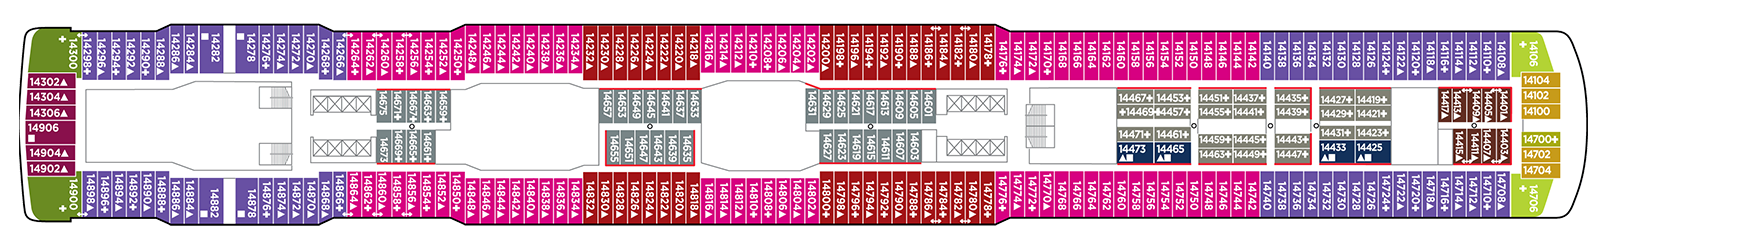 Norwegian Cruise Line Norwegian Escape Deck Plans Deck 14.png